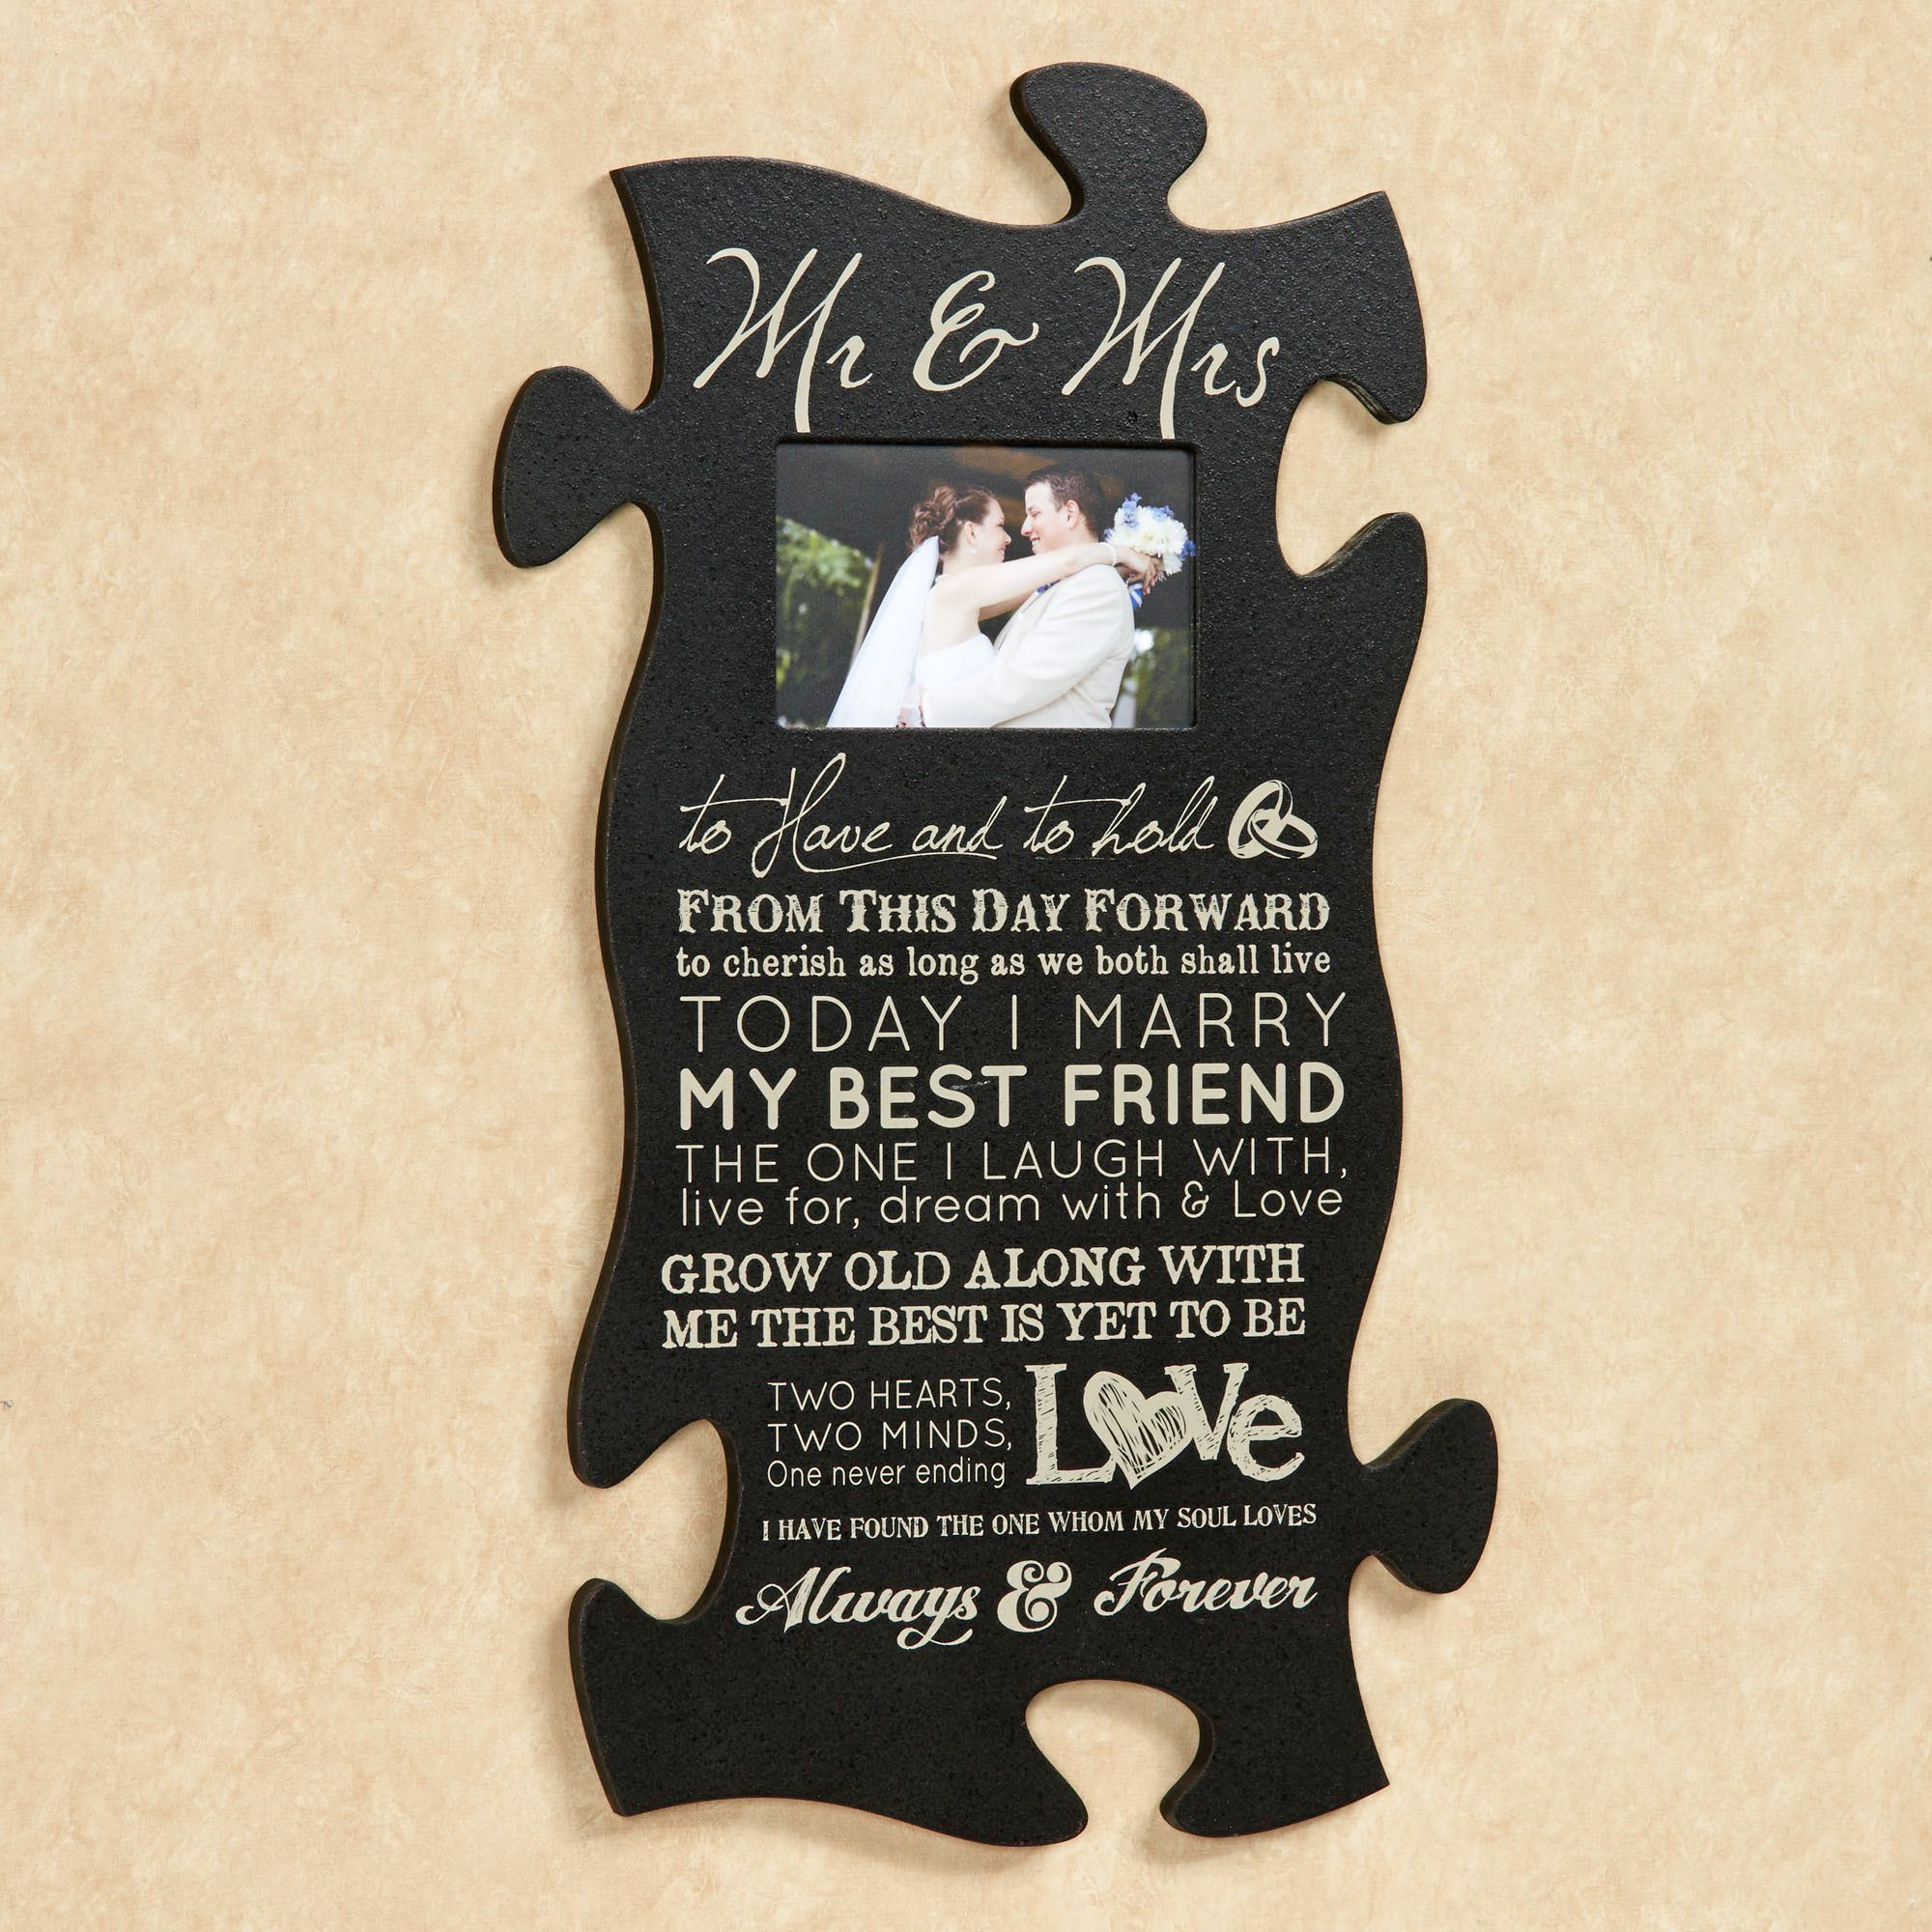 mr and mrs quote photo frame black - Mr And Mrs Photo Frame